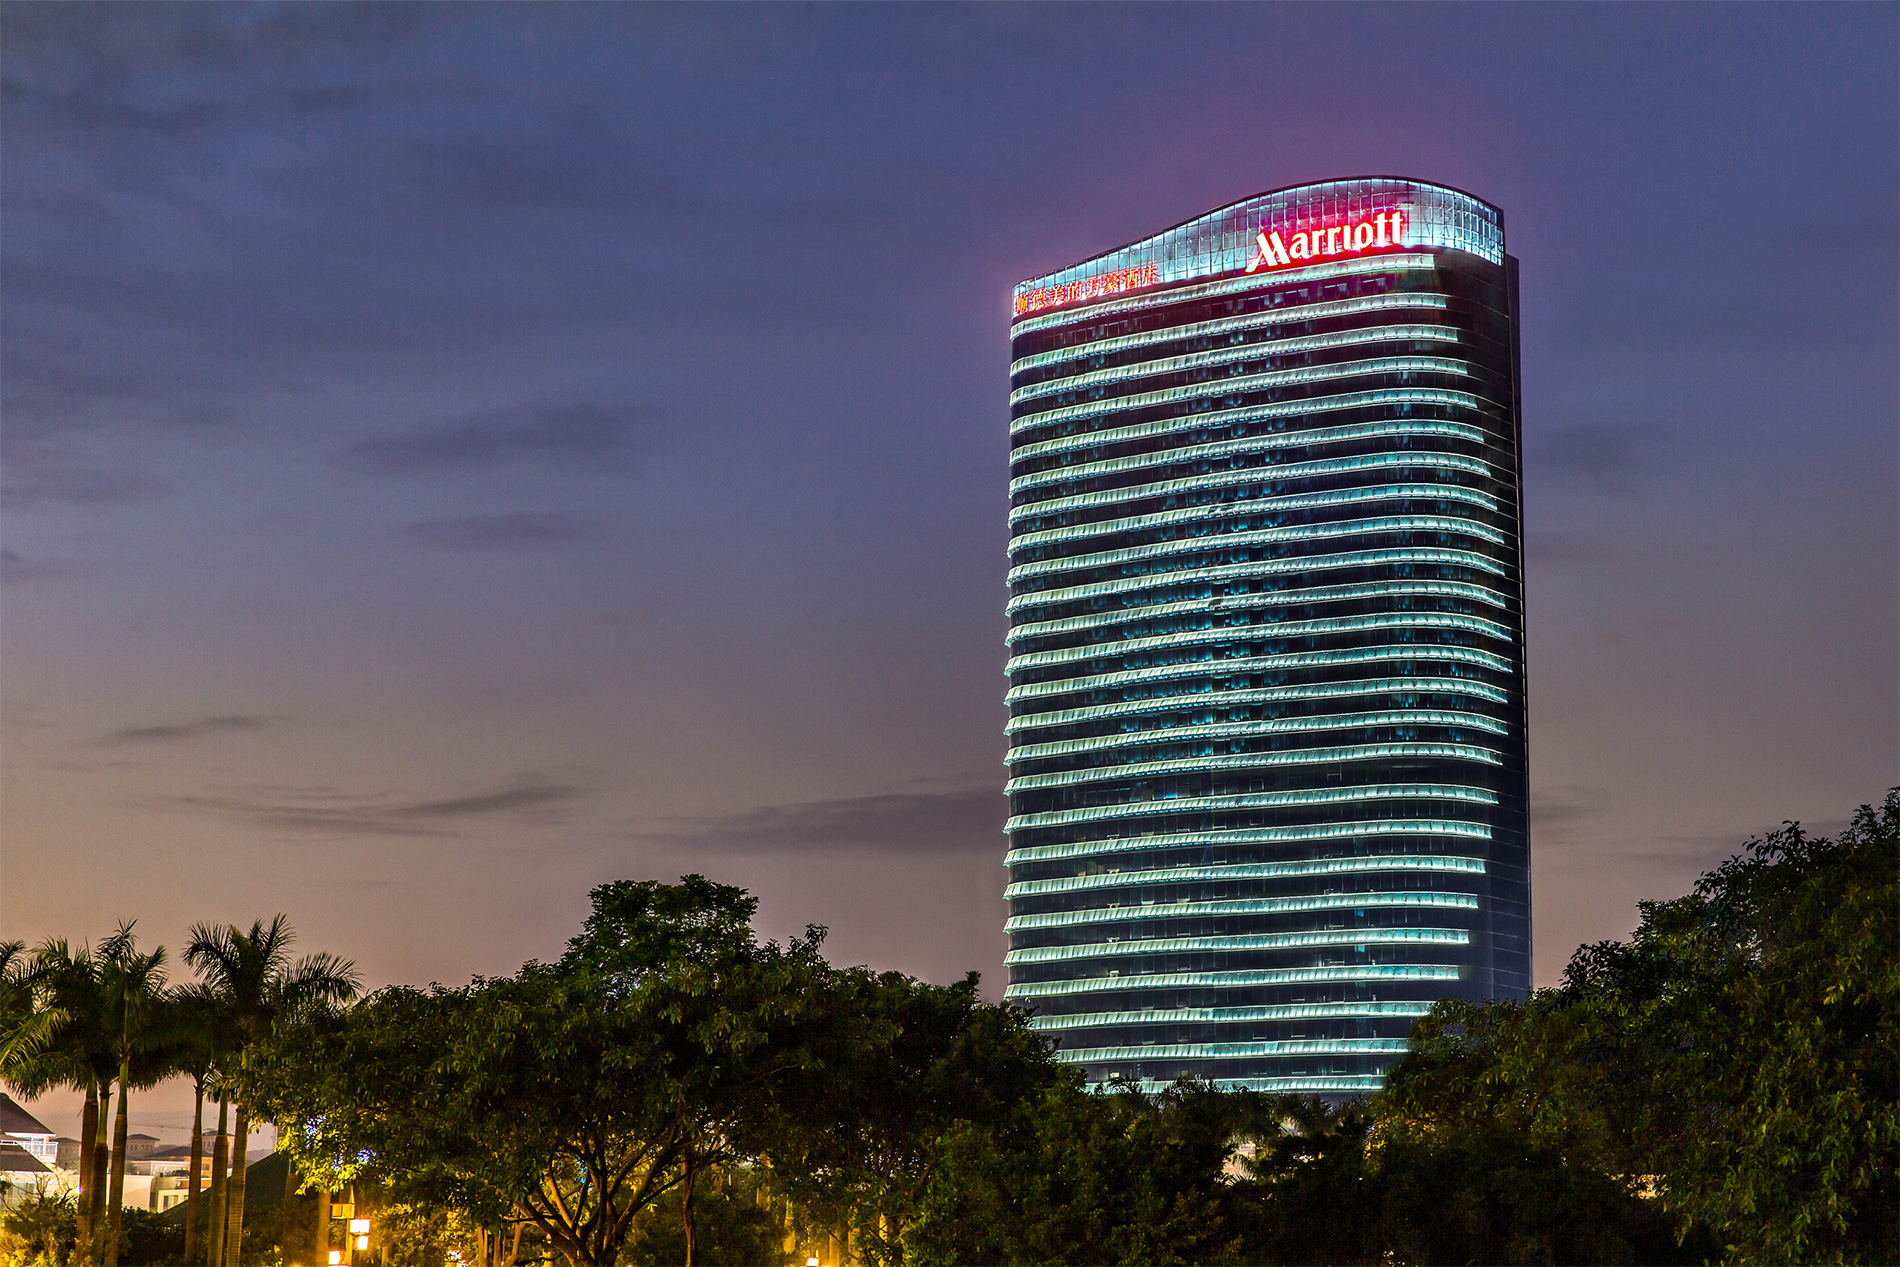 Marriott Hotels Opens Shunde Marriott Hotel In Southern China